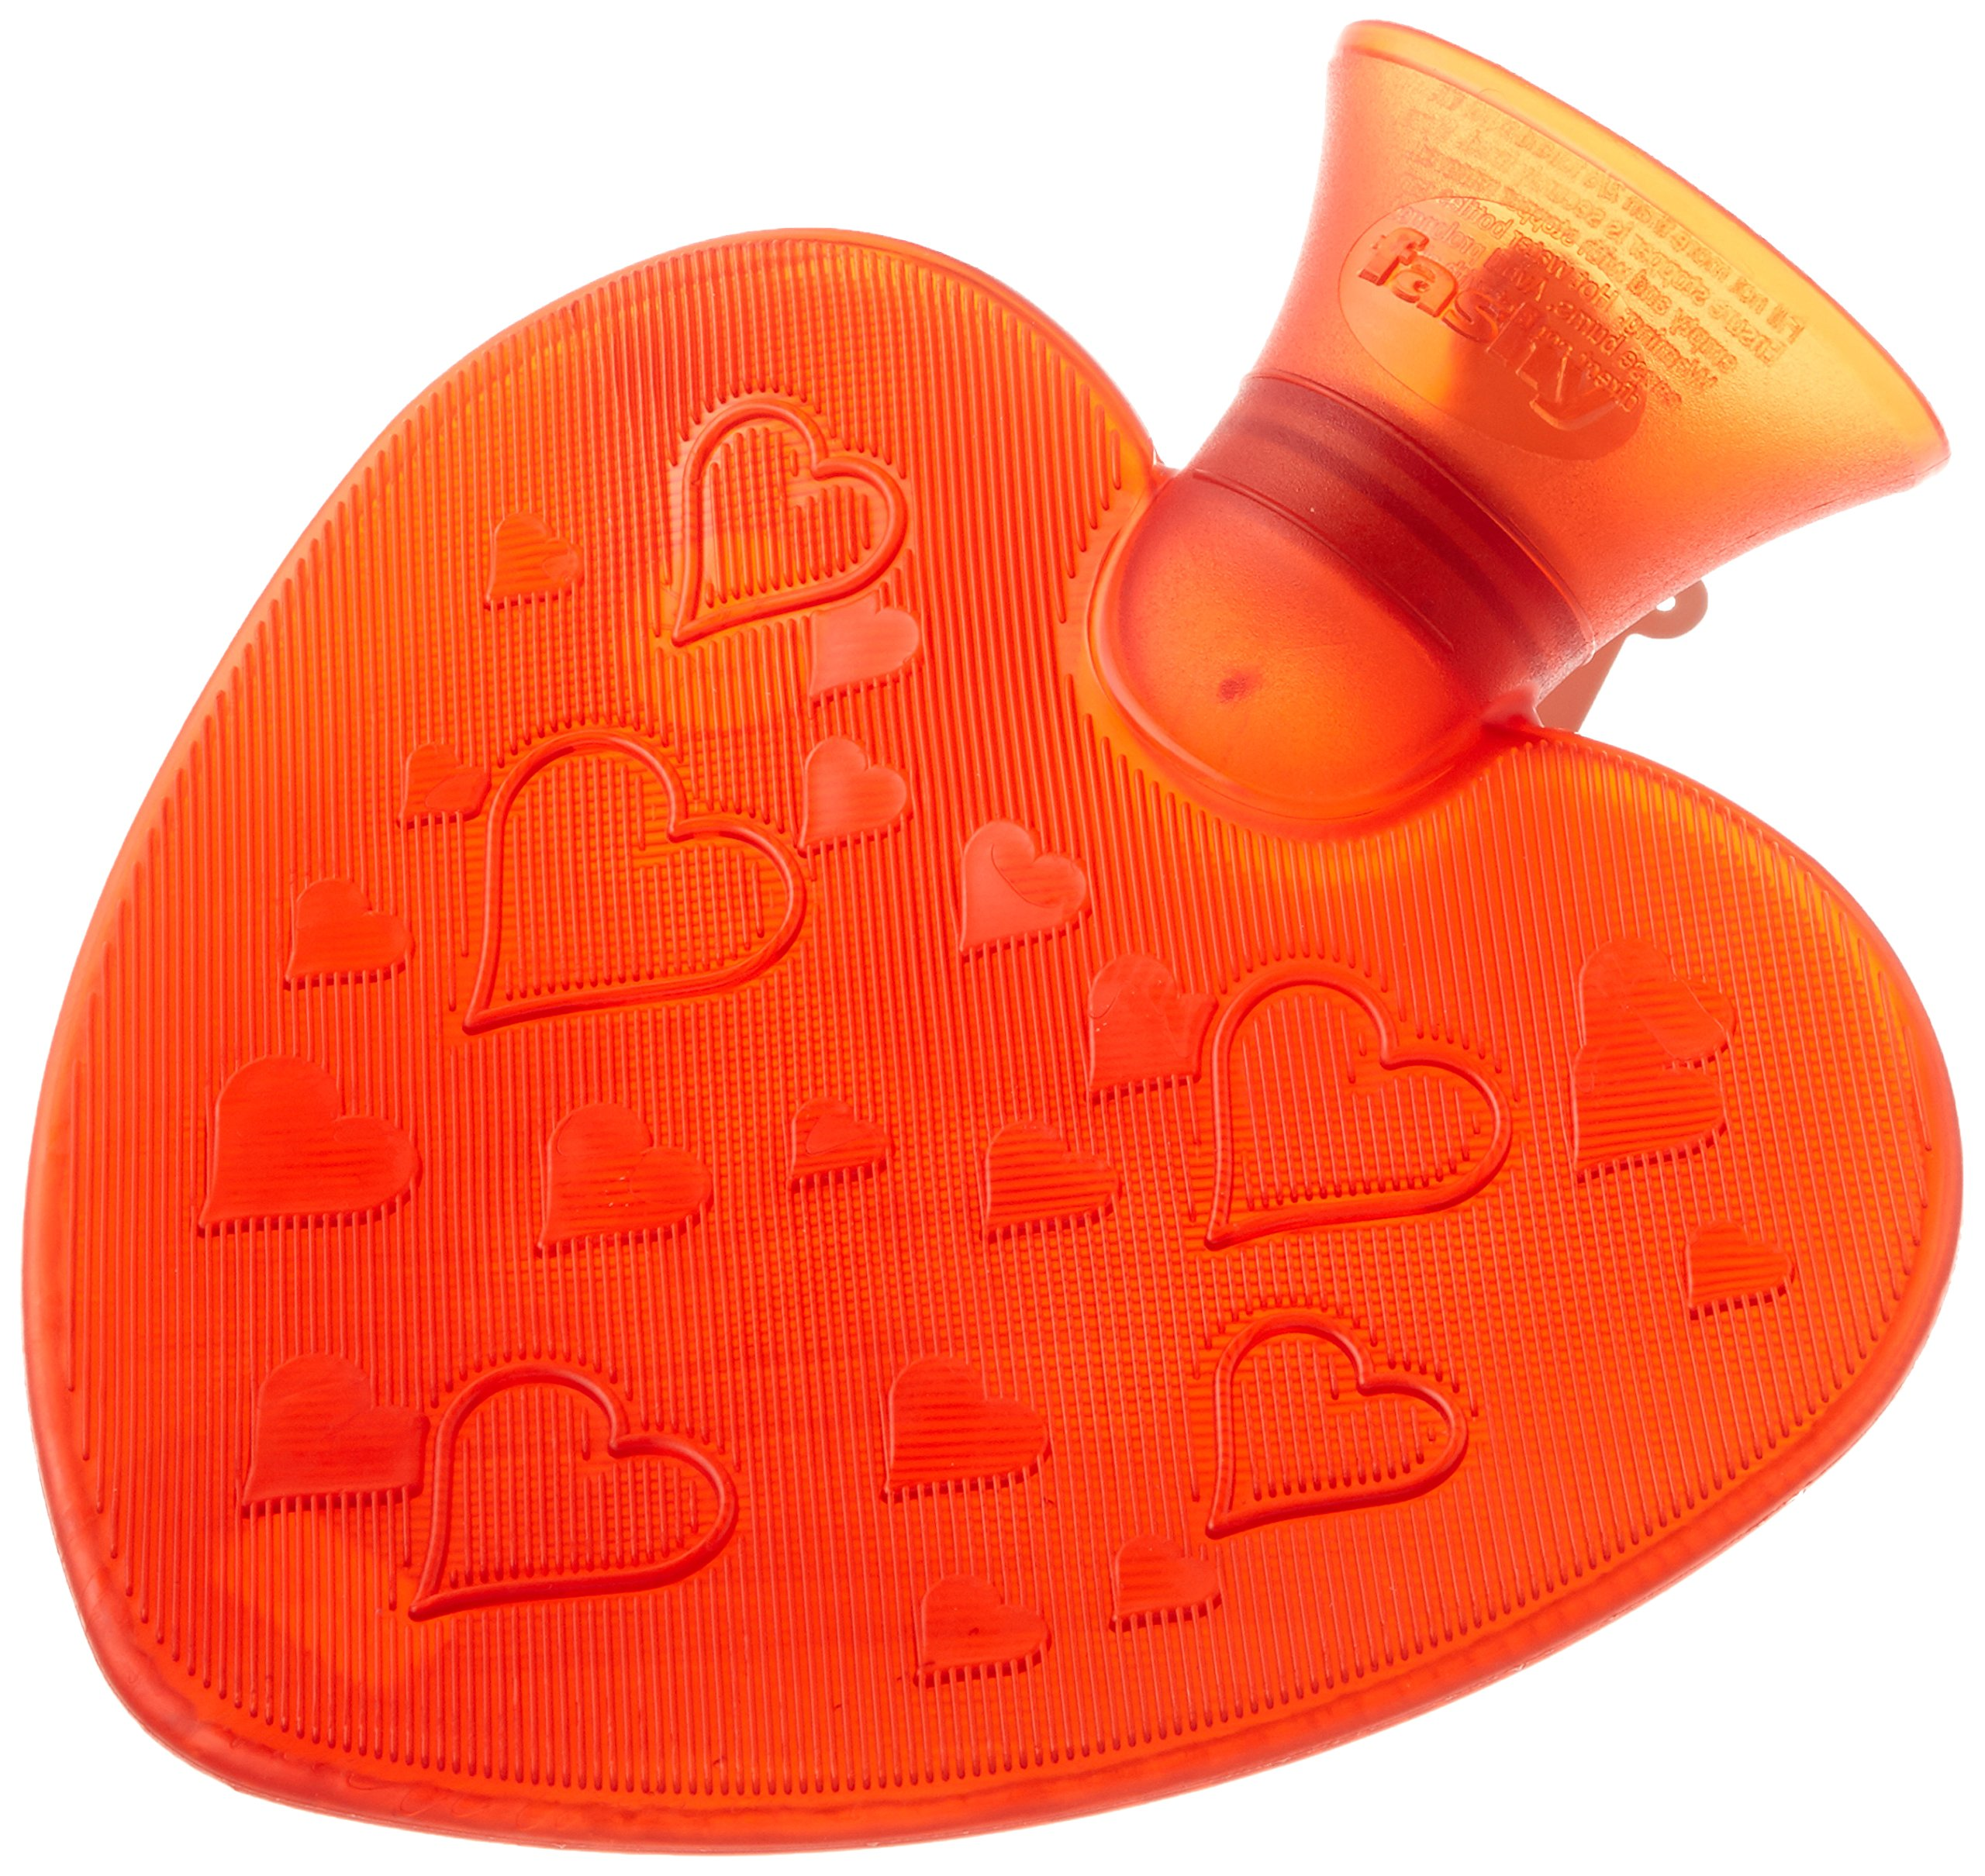 Fashy Small Heart Shaped Red Transparent Travel Size Hot Water Bottle Made in Germany, Soothes Aches and Pains, Eases Stress, 0.7 Liter Capacity by Fashy